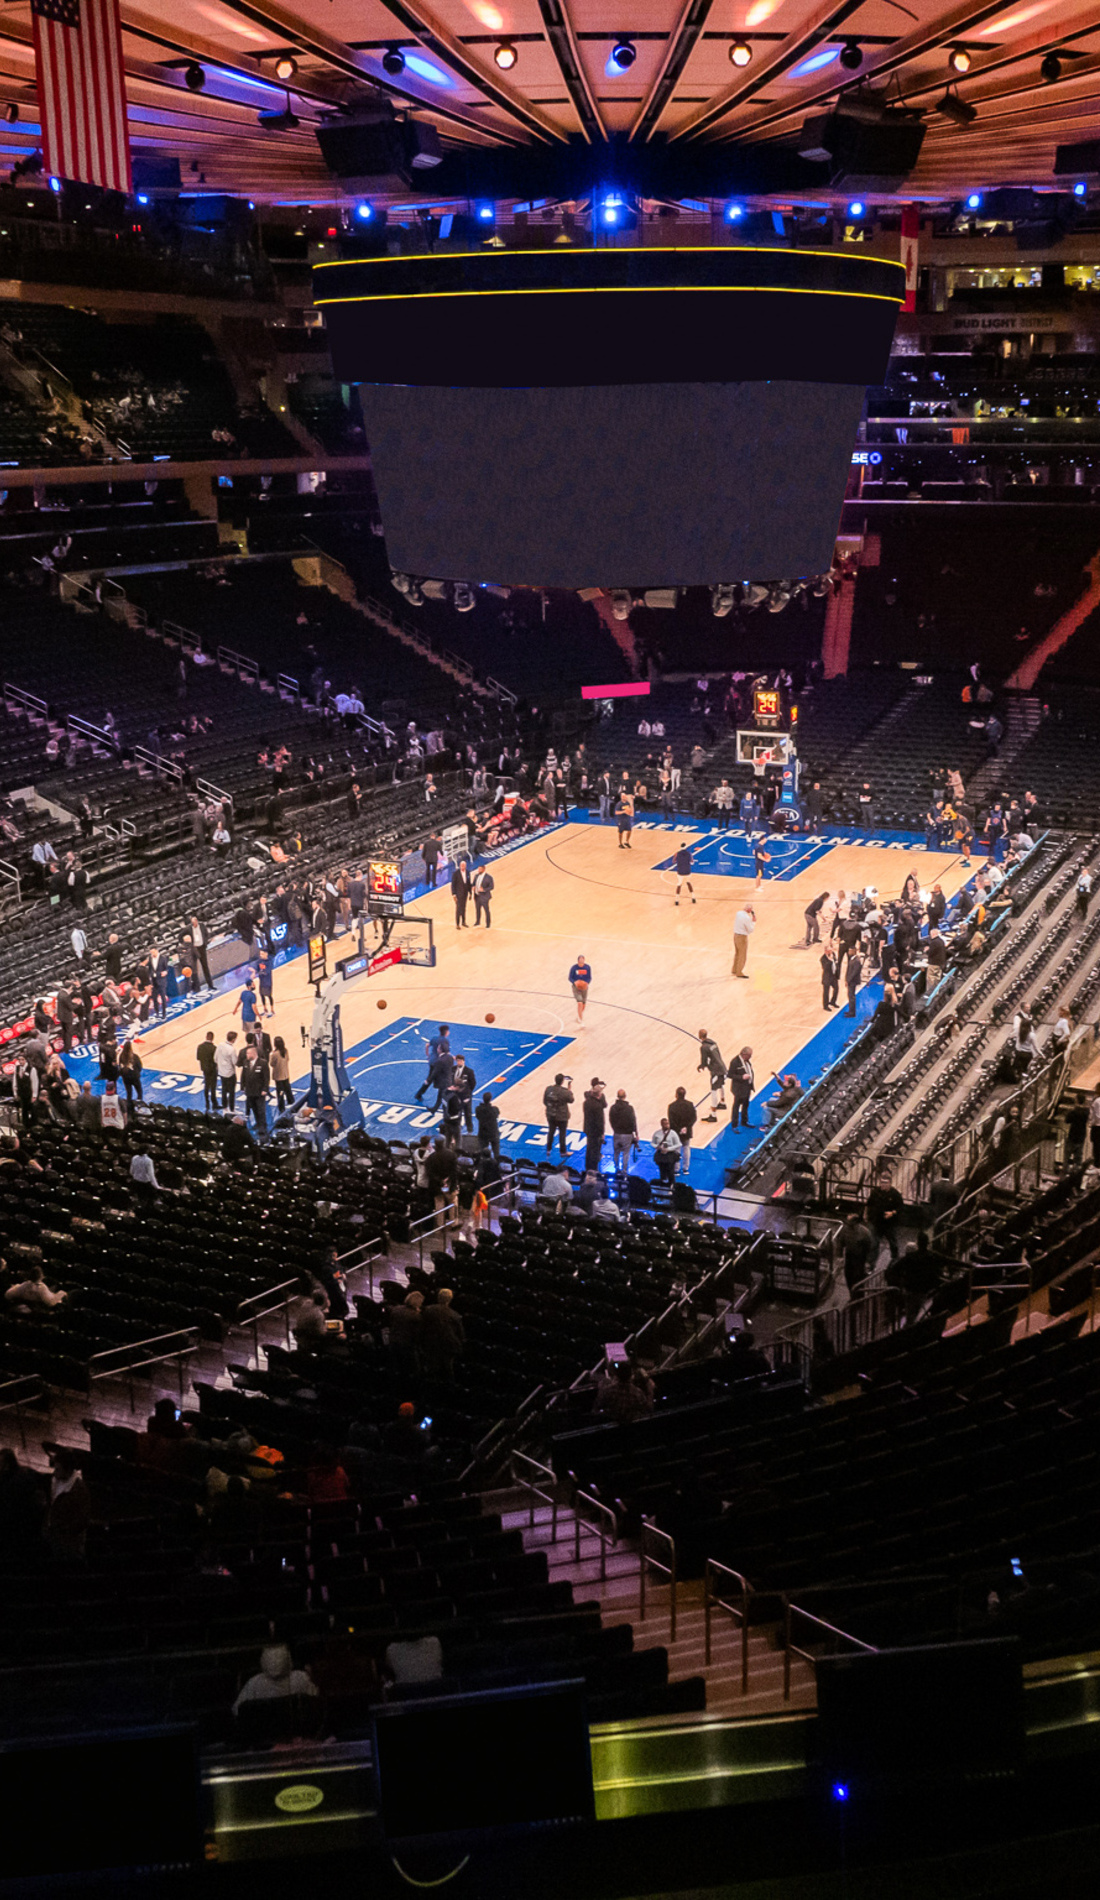 A New York Knicks live event